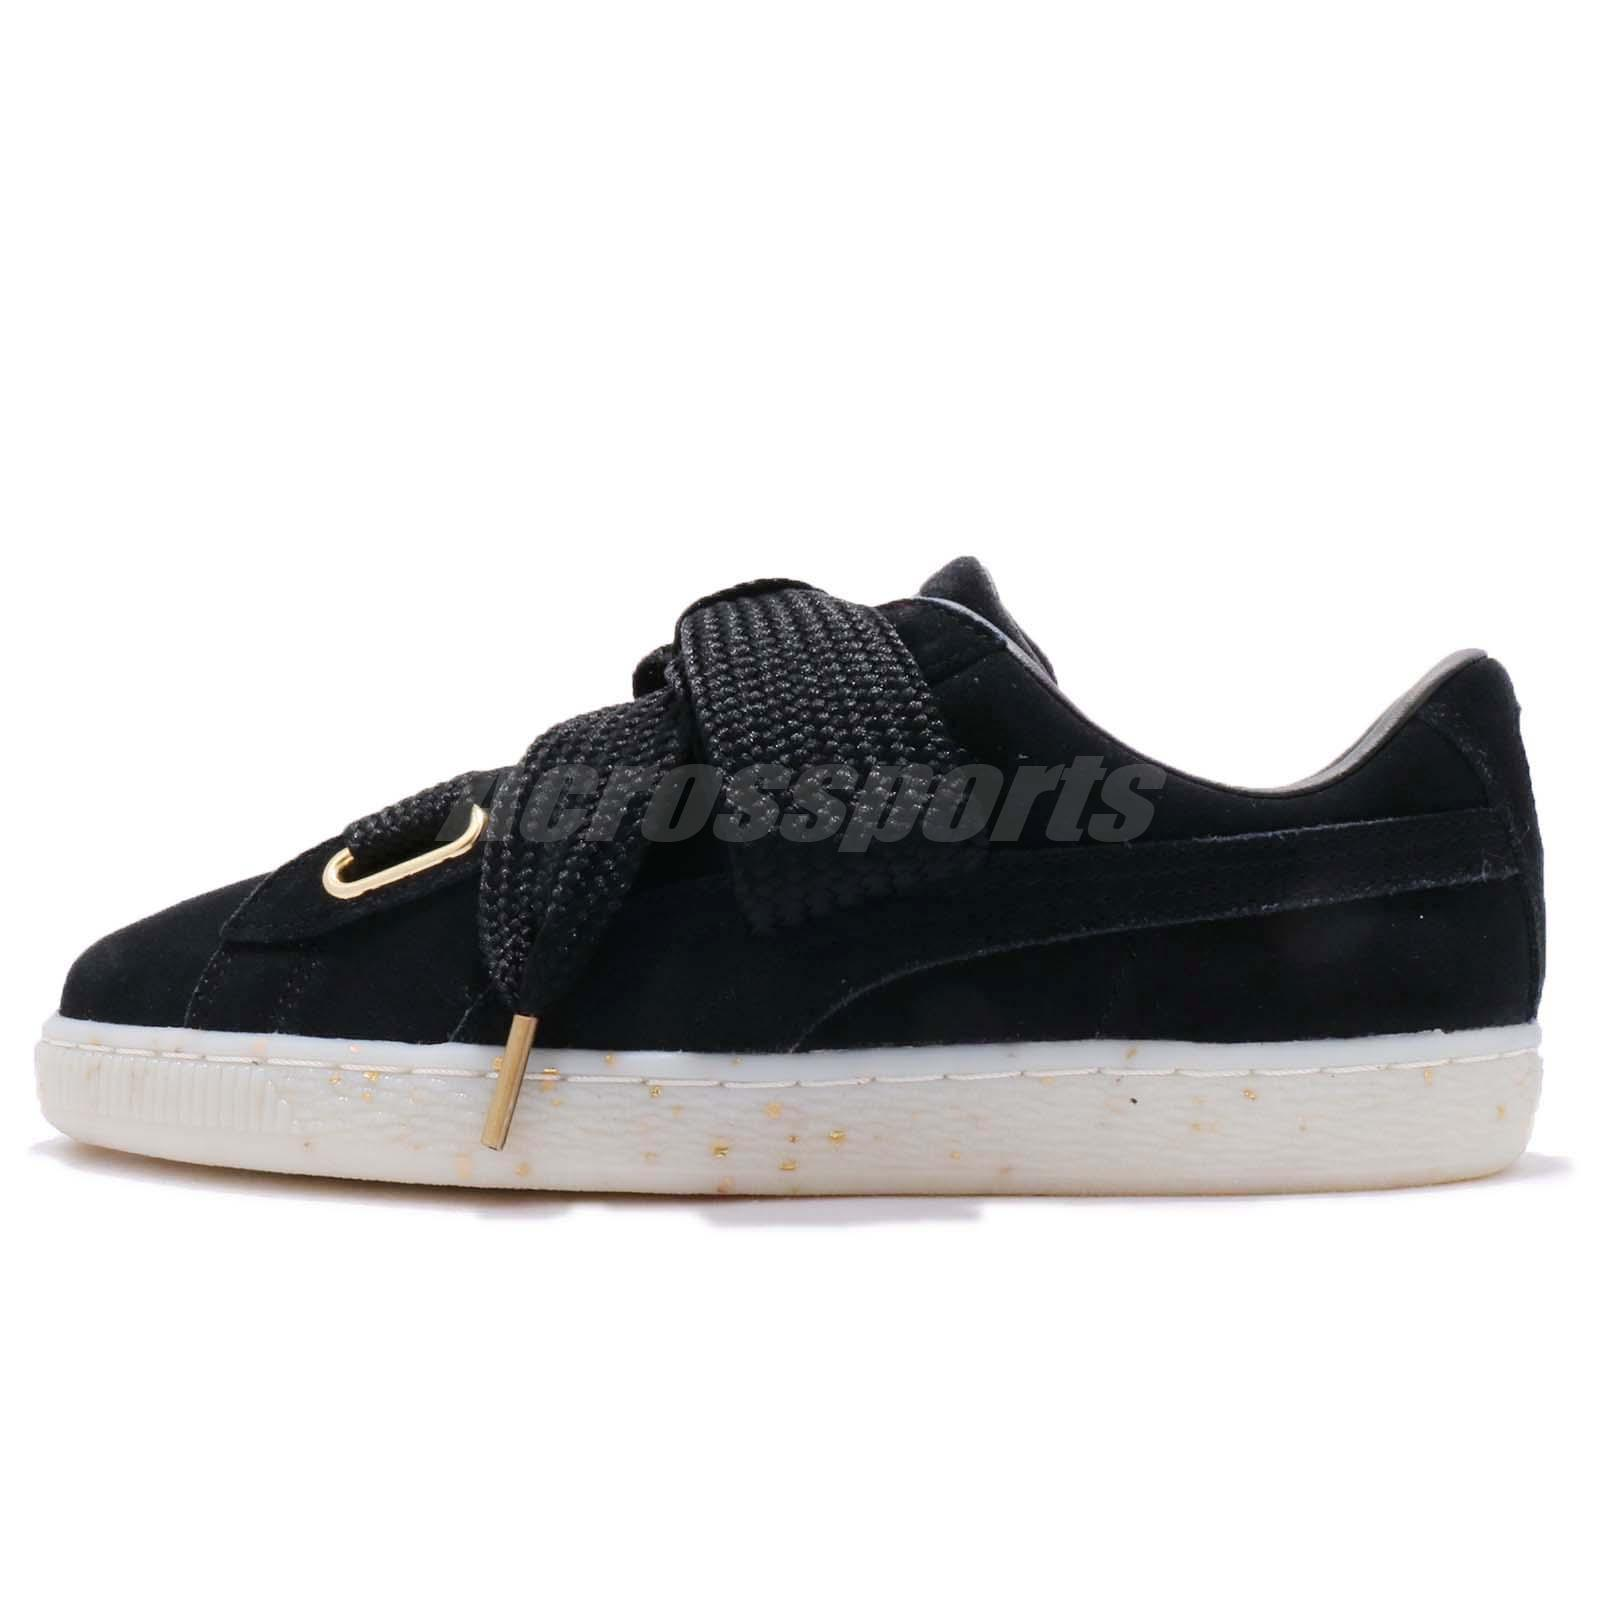 2ce21b84b4d Puma Suede Heart Celebrate Wns Suede Black Gold Women Shoes Sneakers  365561-01